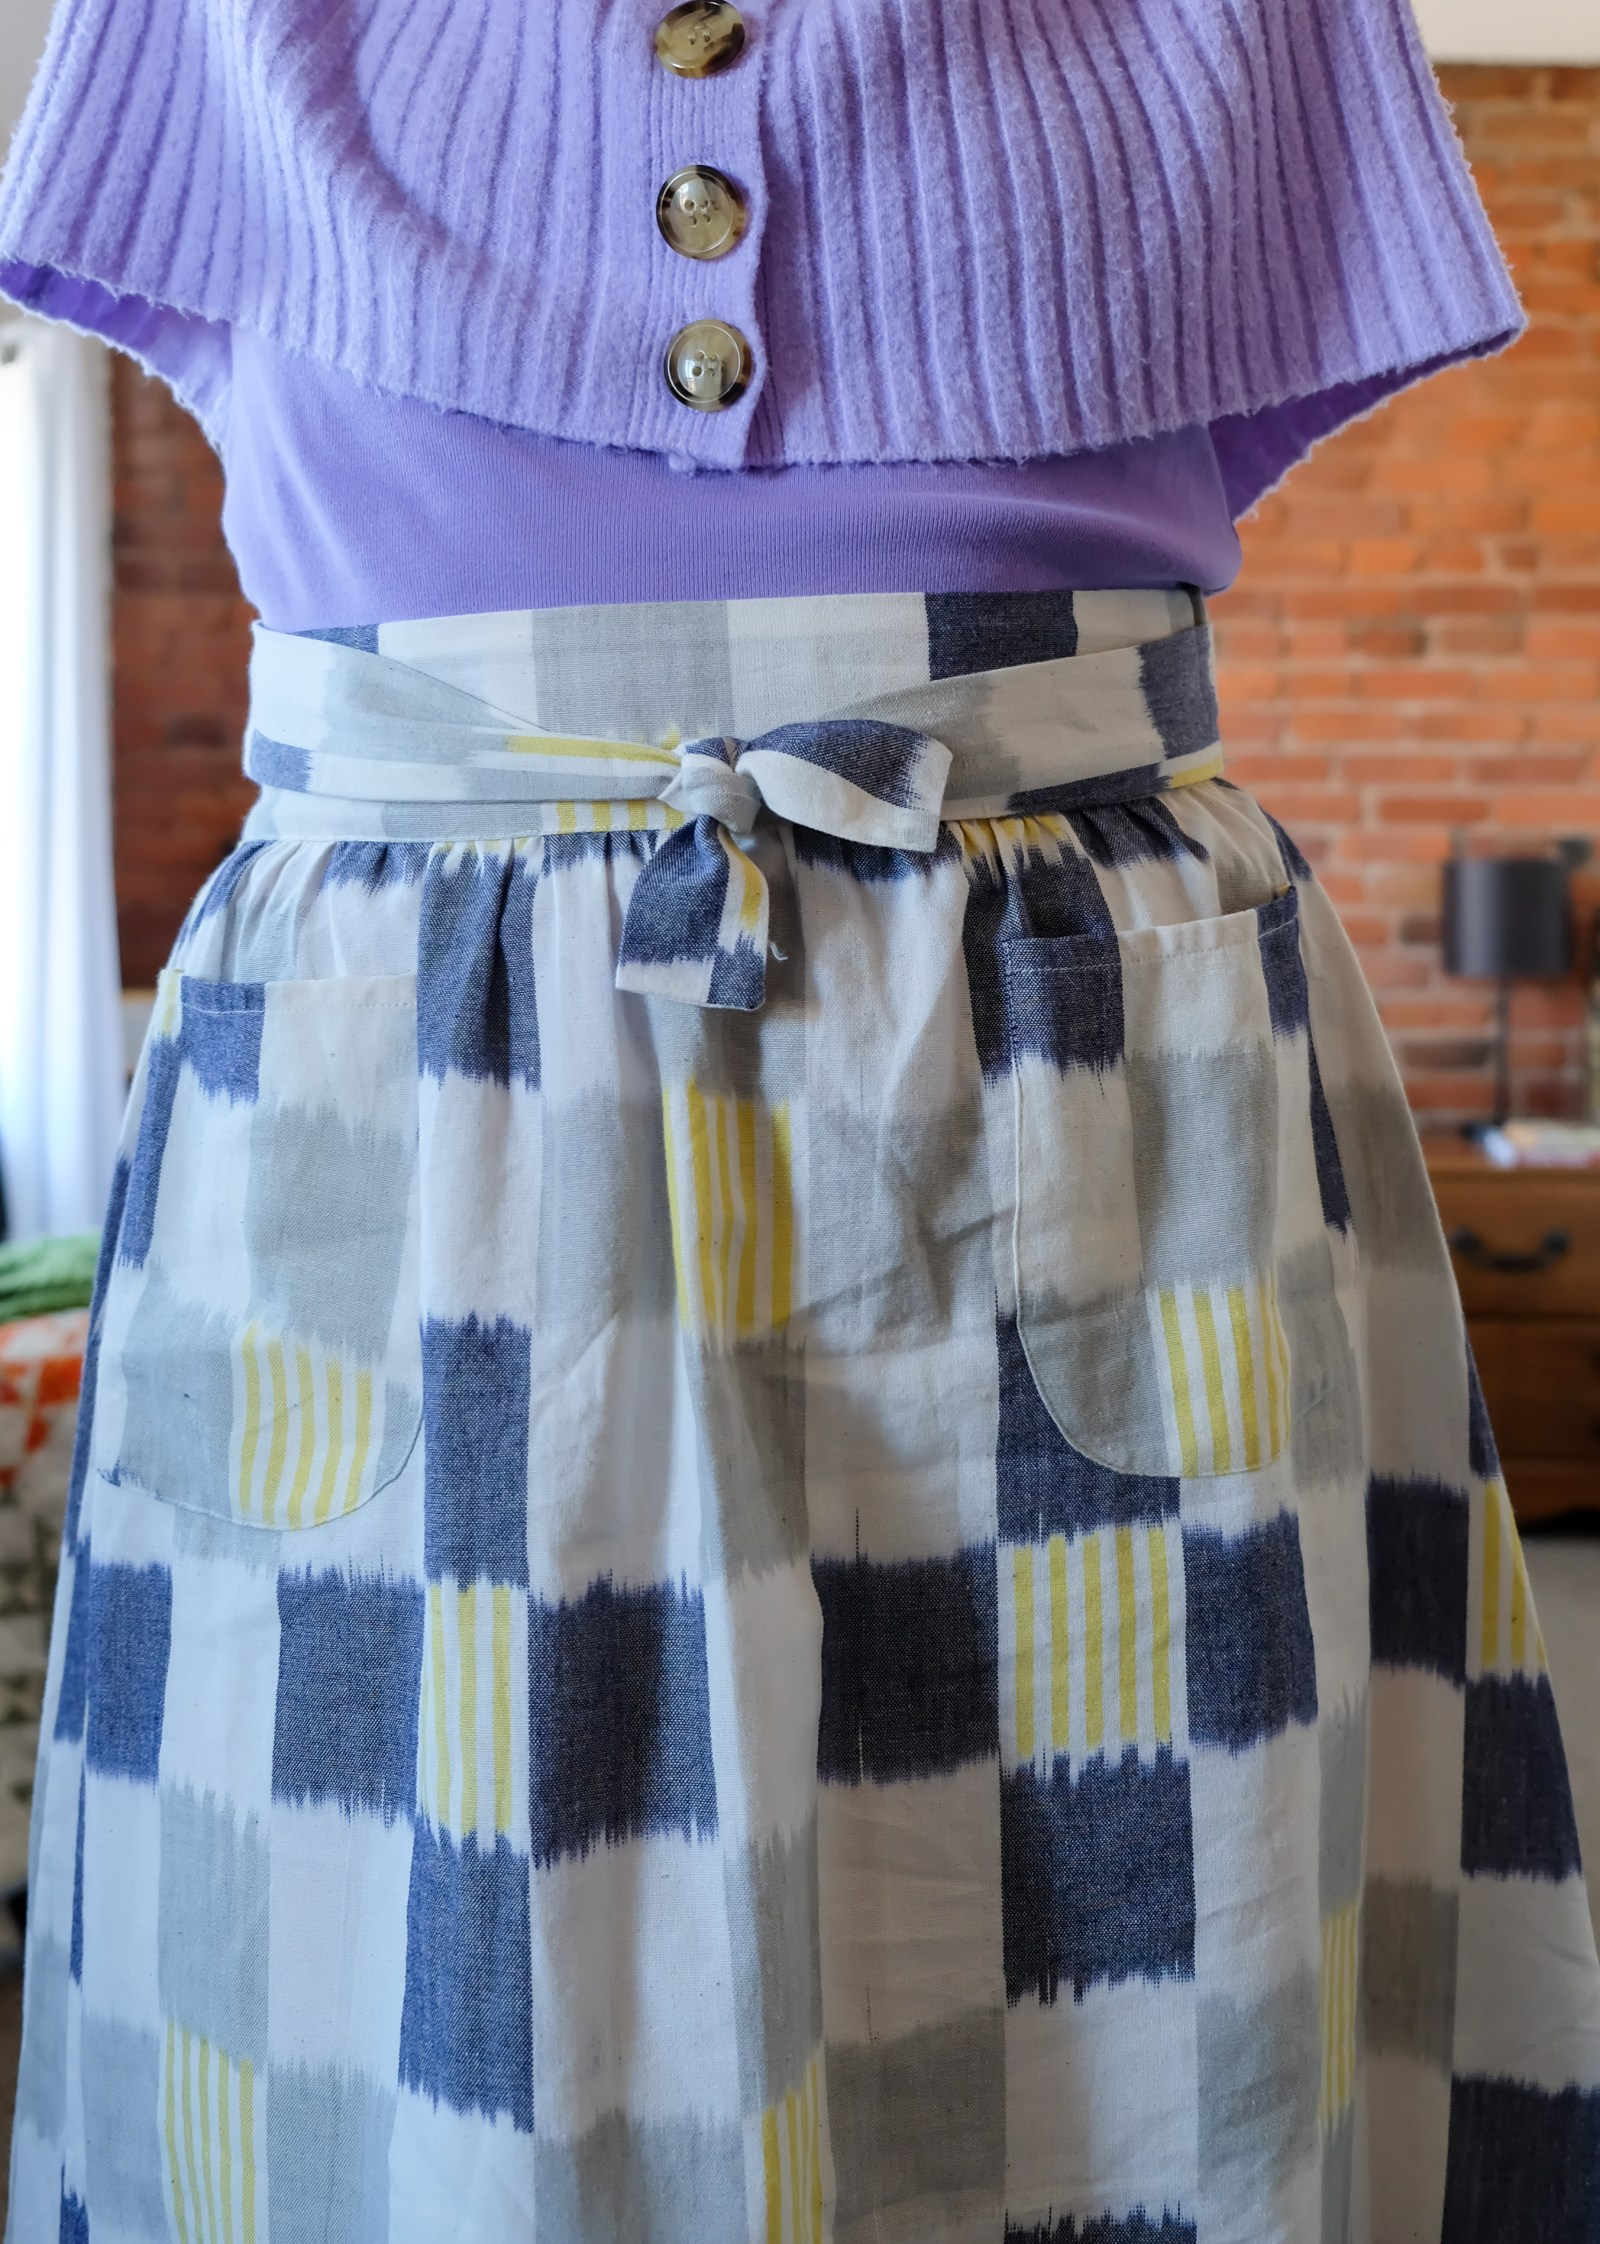 Sustainable Patterned Clothing - Passion Lilie